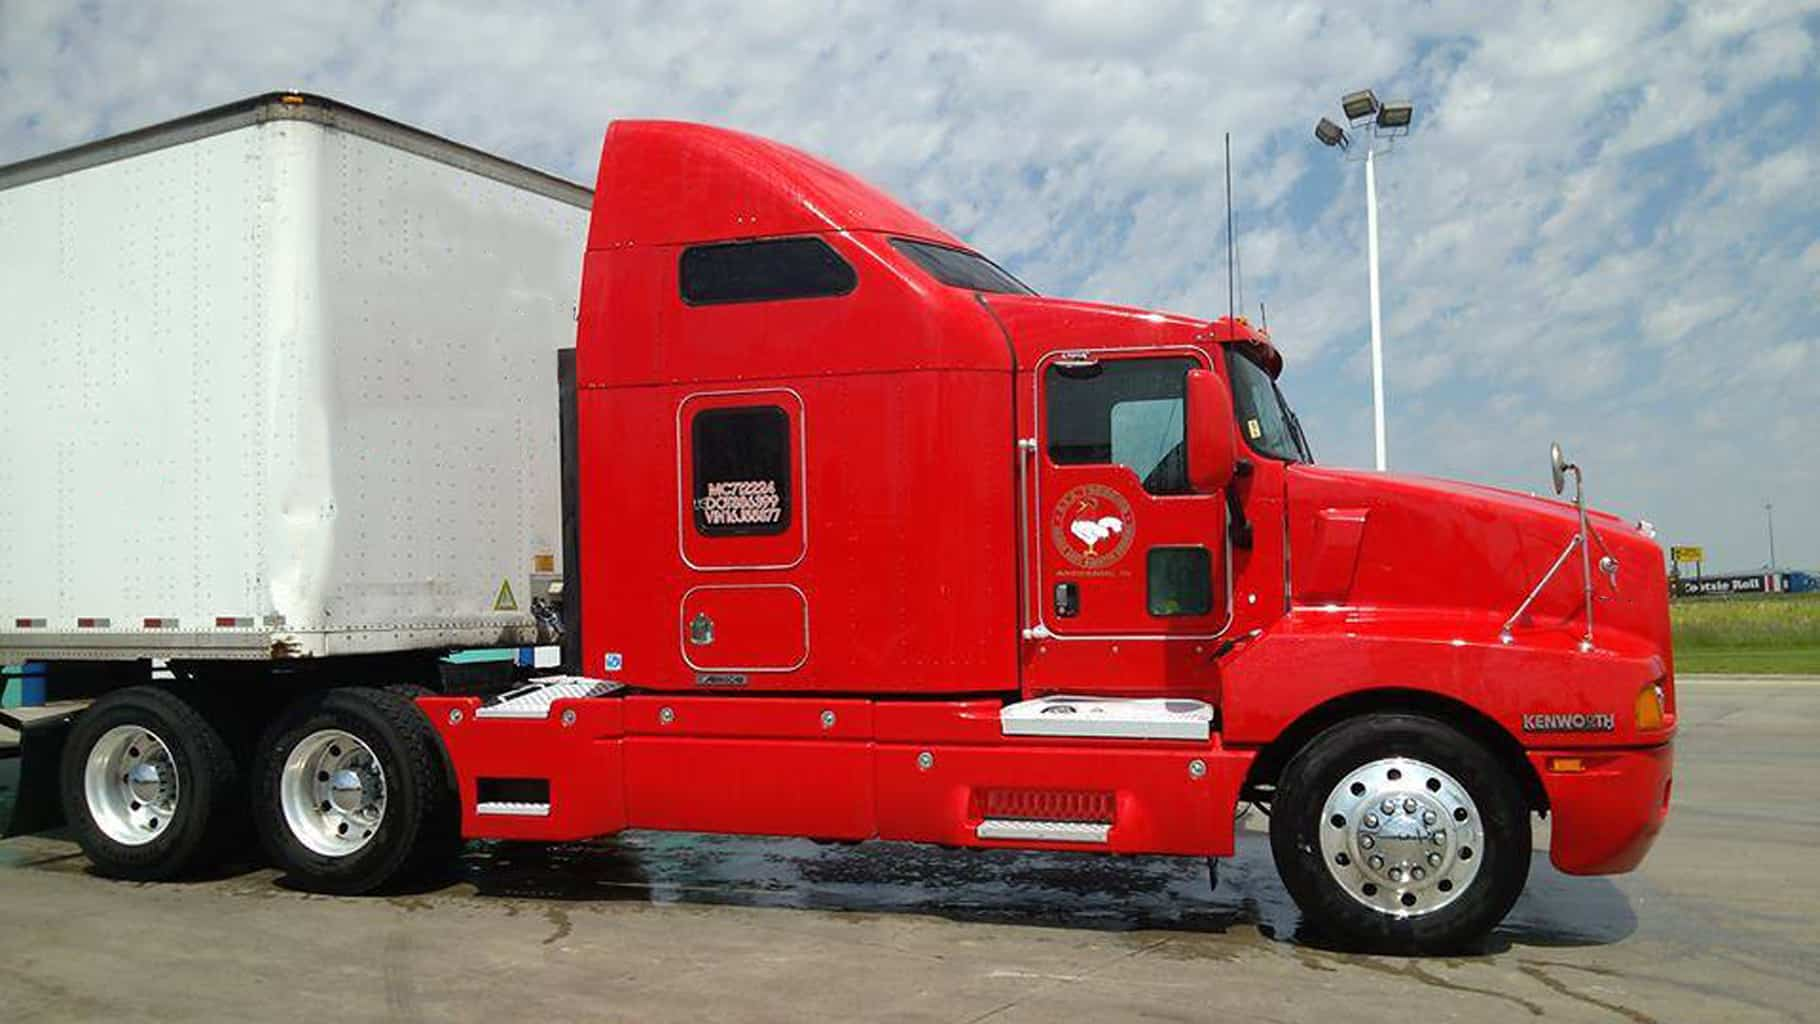 Indiana trucking company to shut down after insurance costs